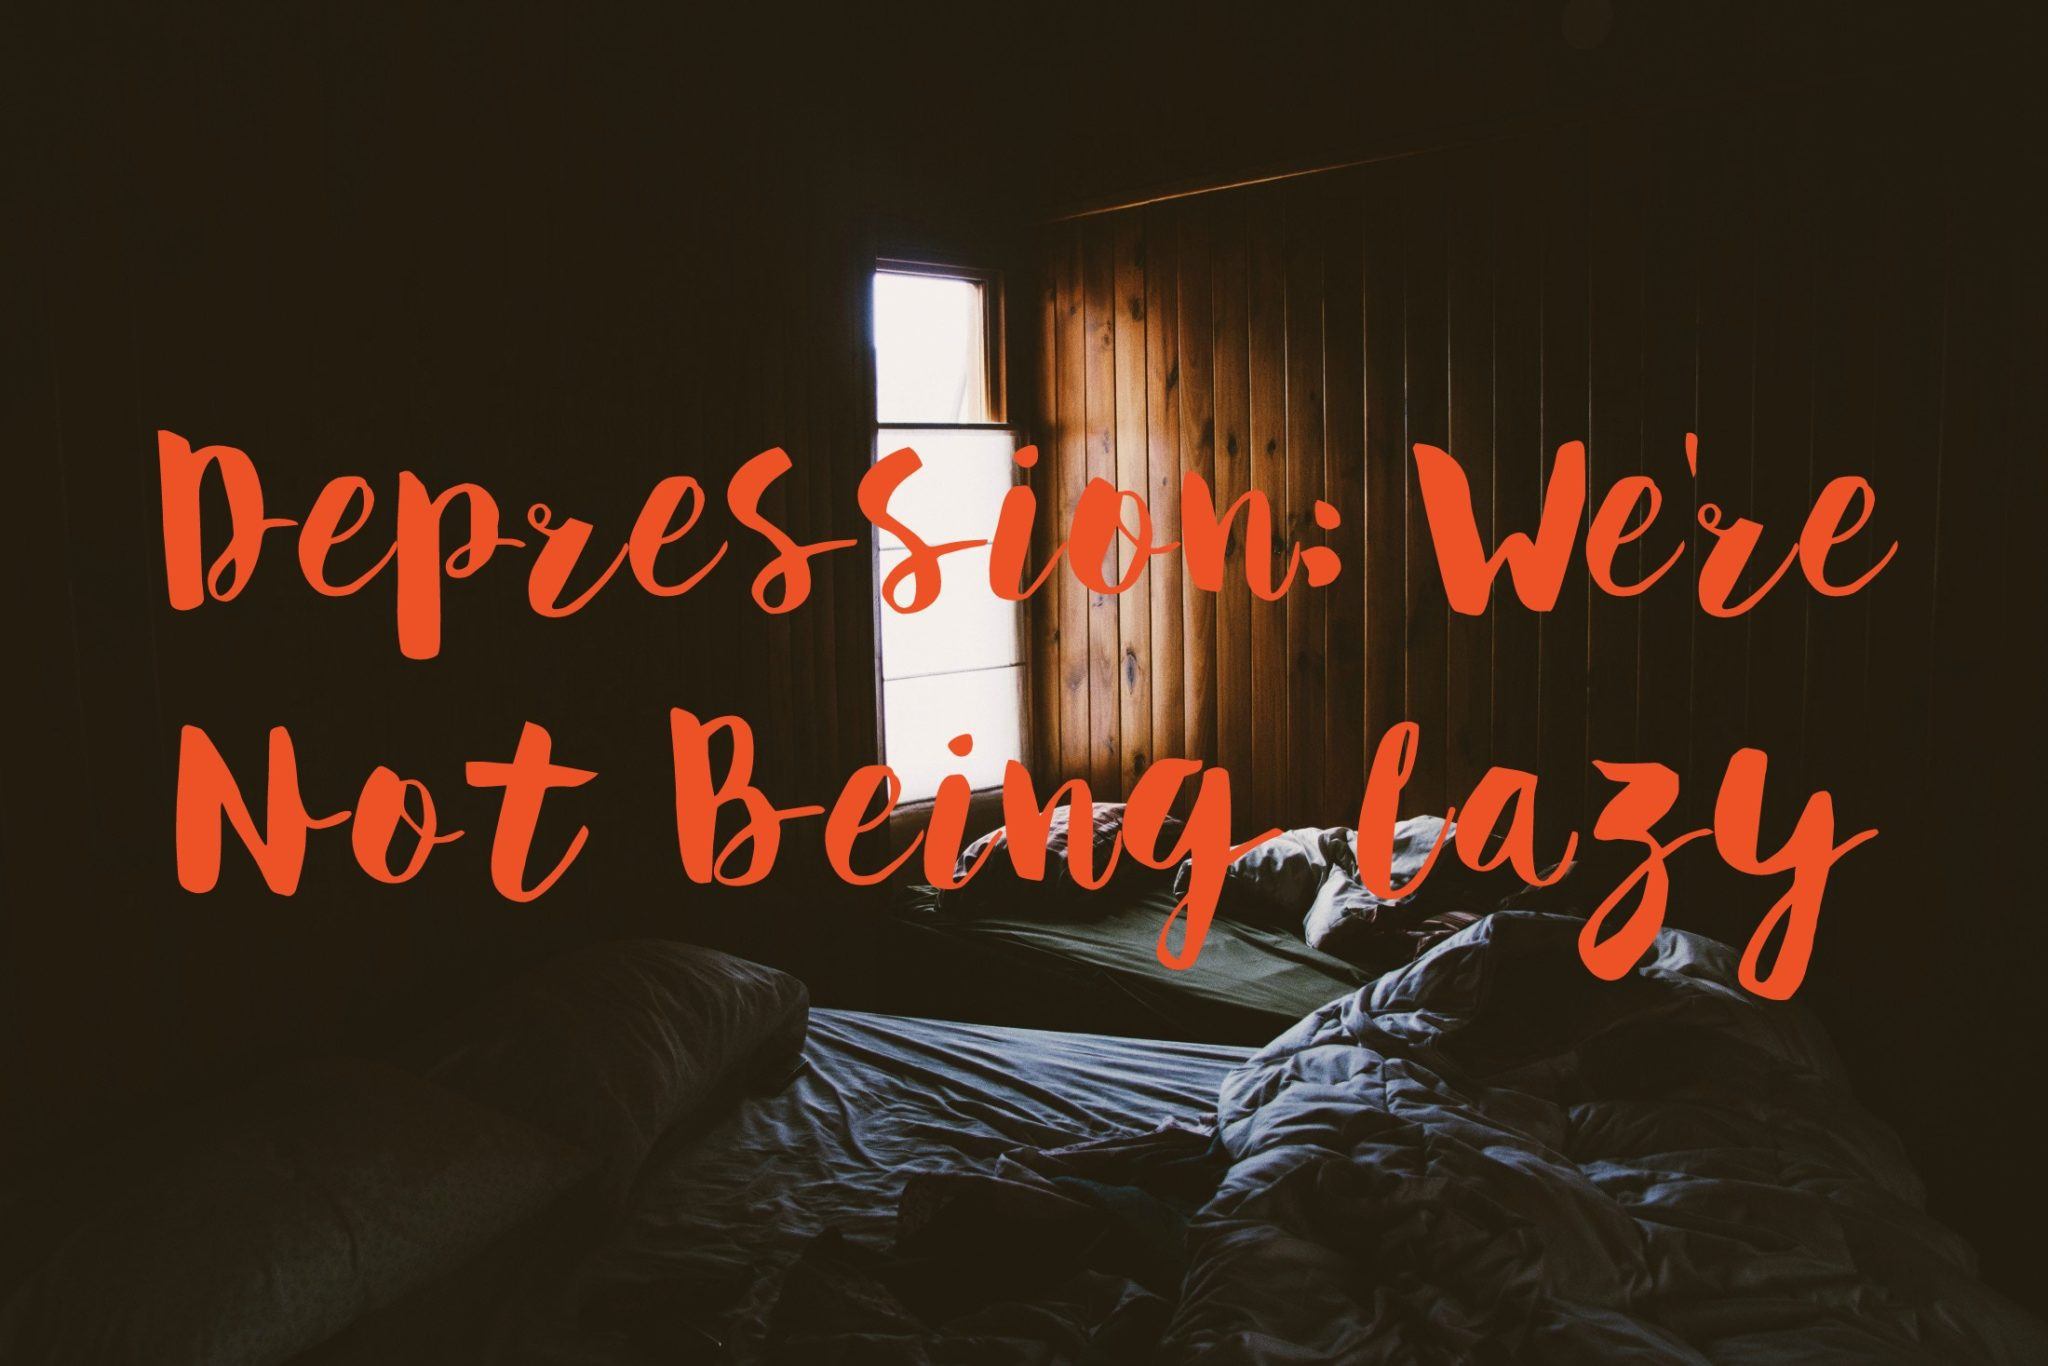 Depression: We're Not Being Lazy